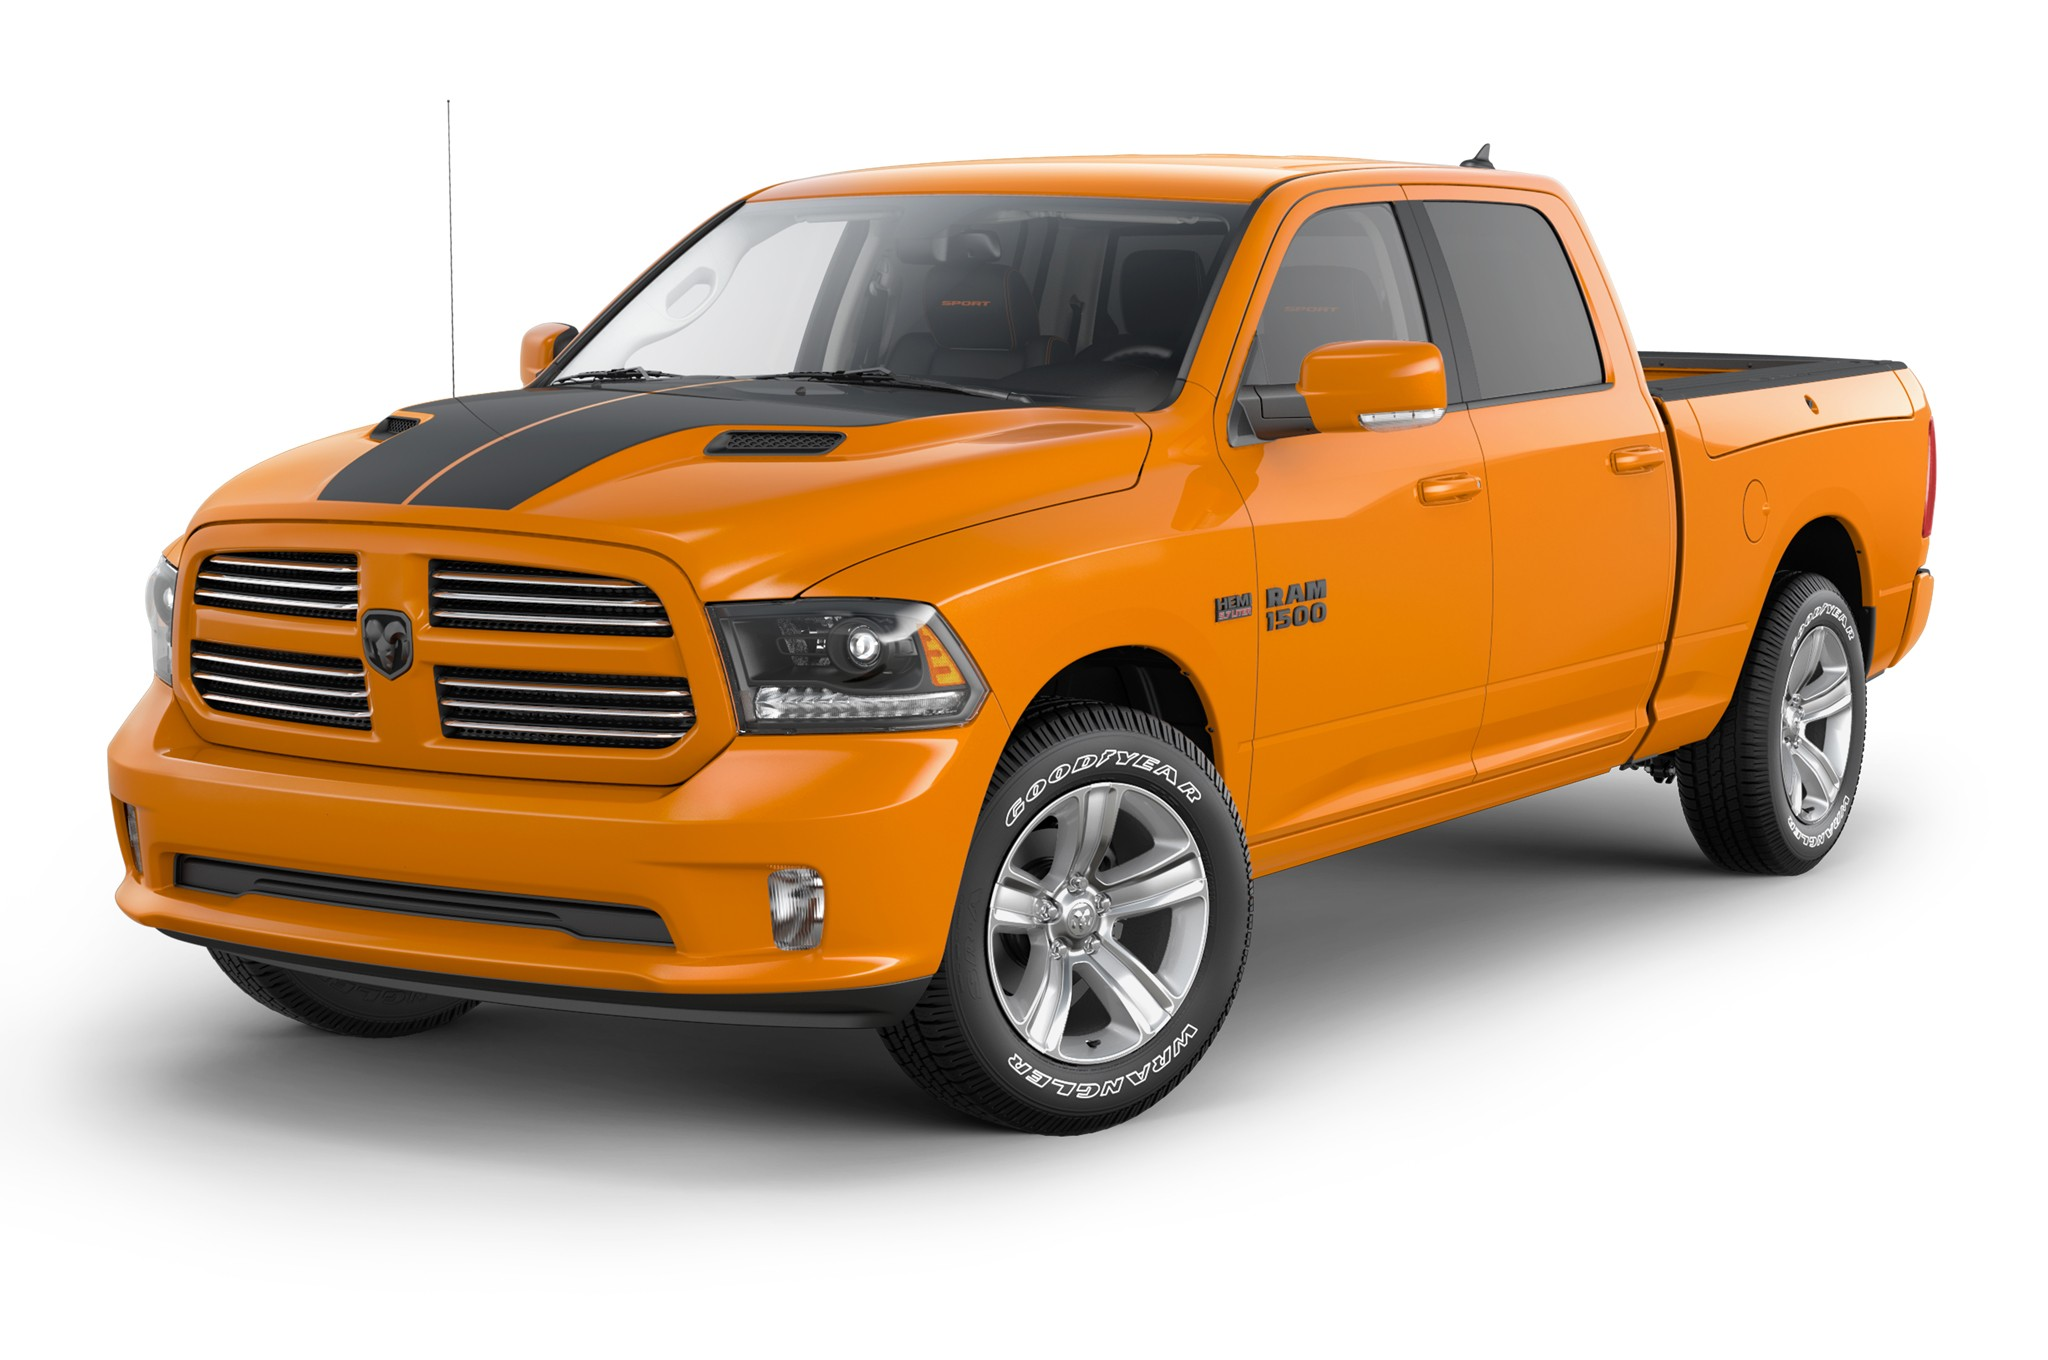 Blacked Out Ram >> 2015 Ram 1500 Ignition Orange Sport & Black Sport Editions Limited to 1,000 Units Each ...